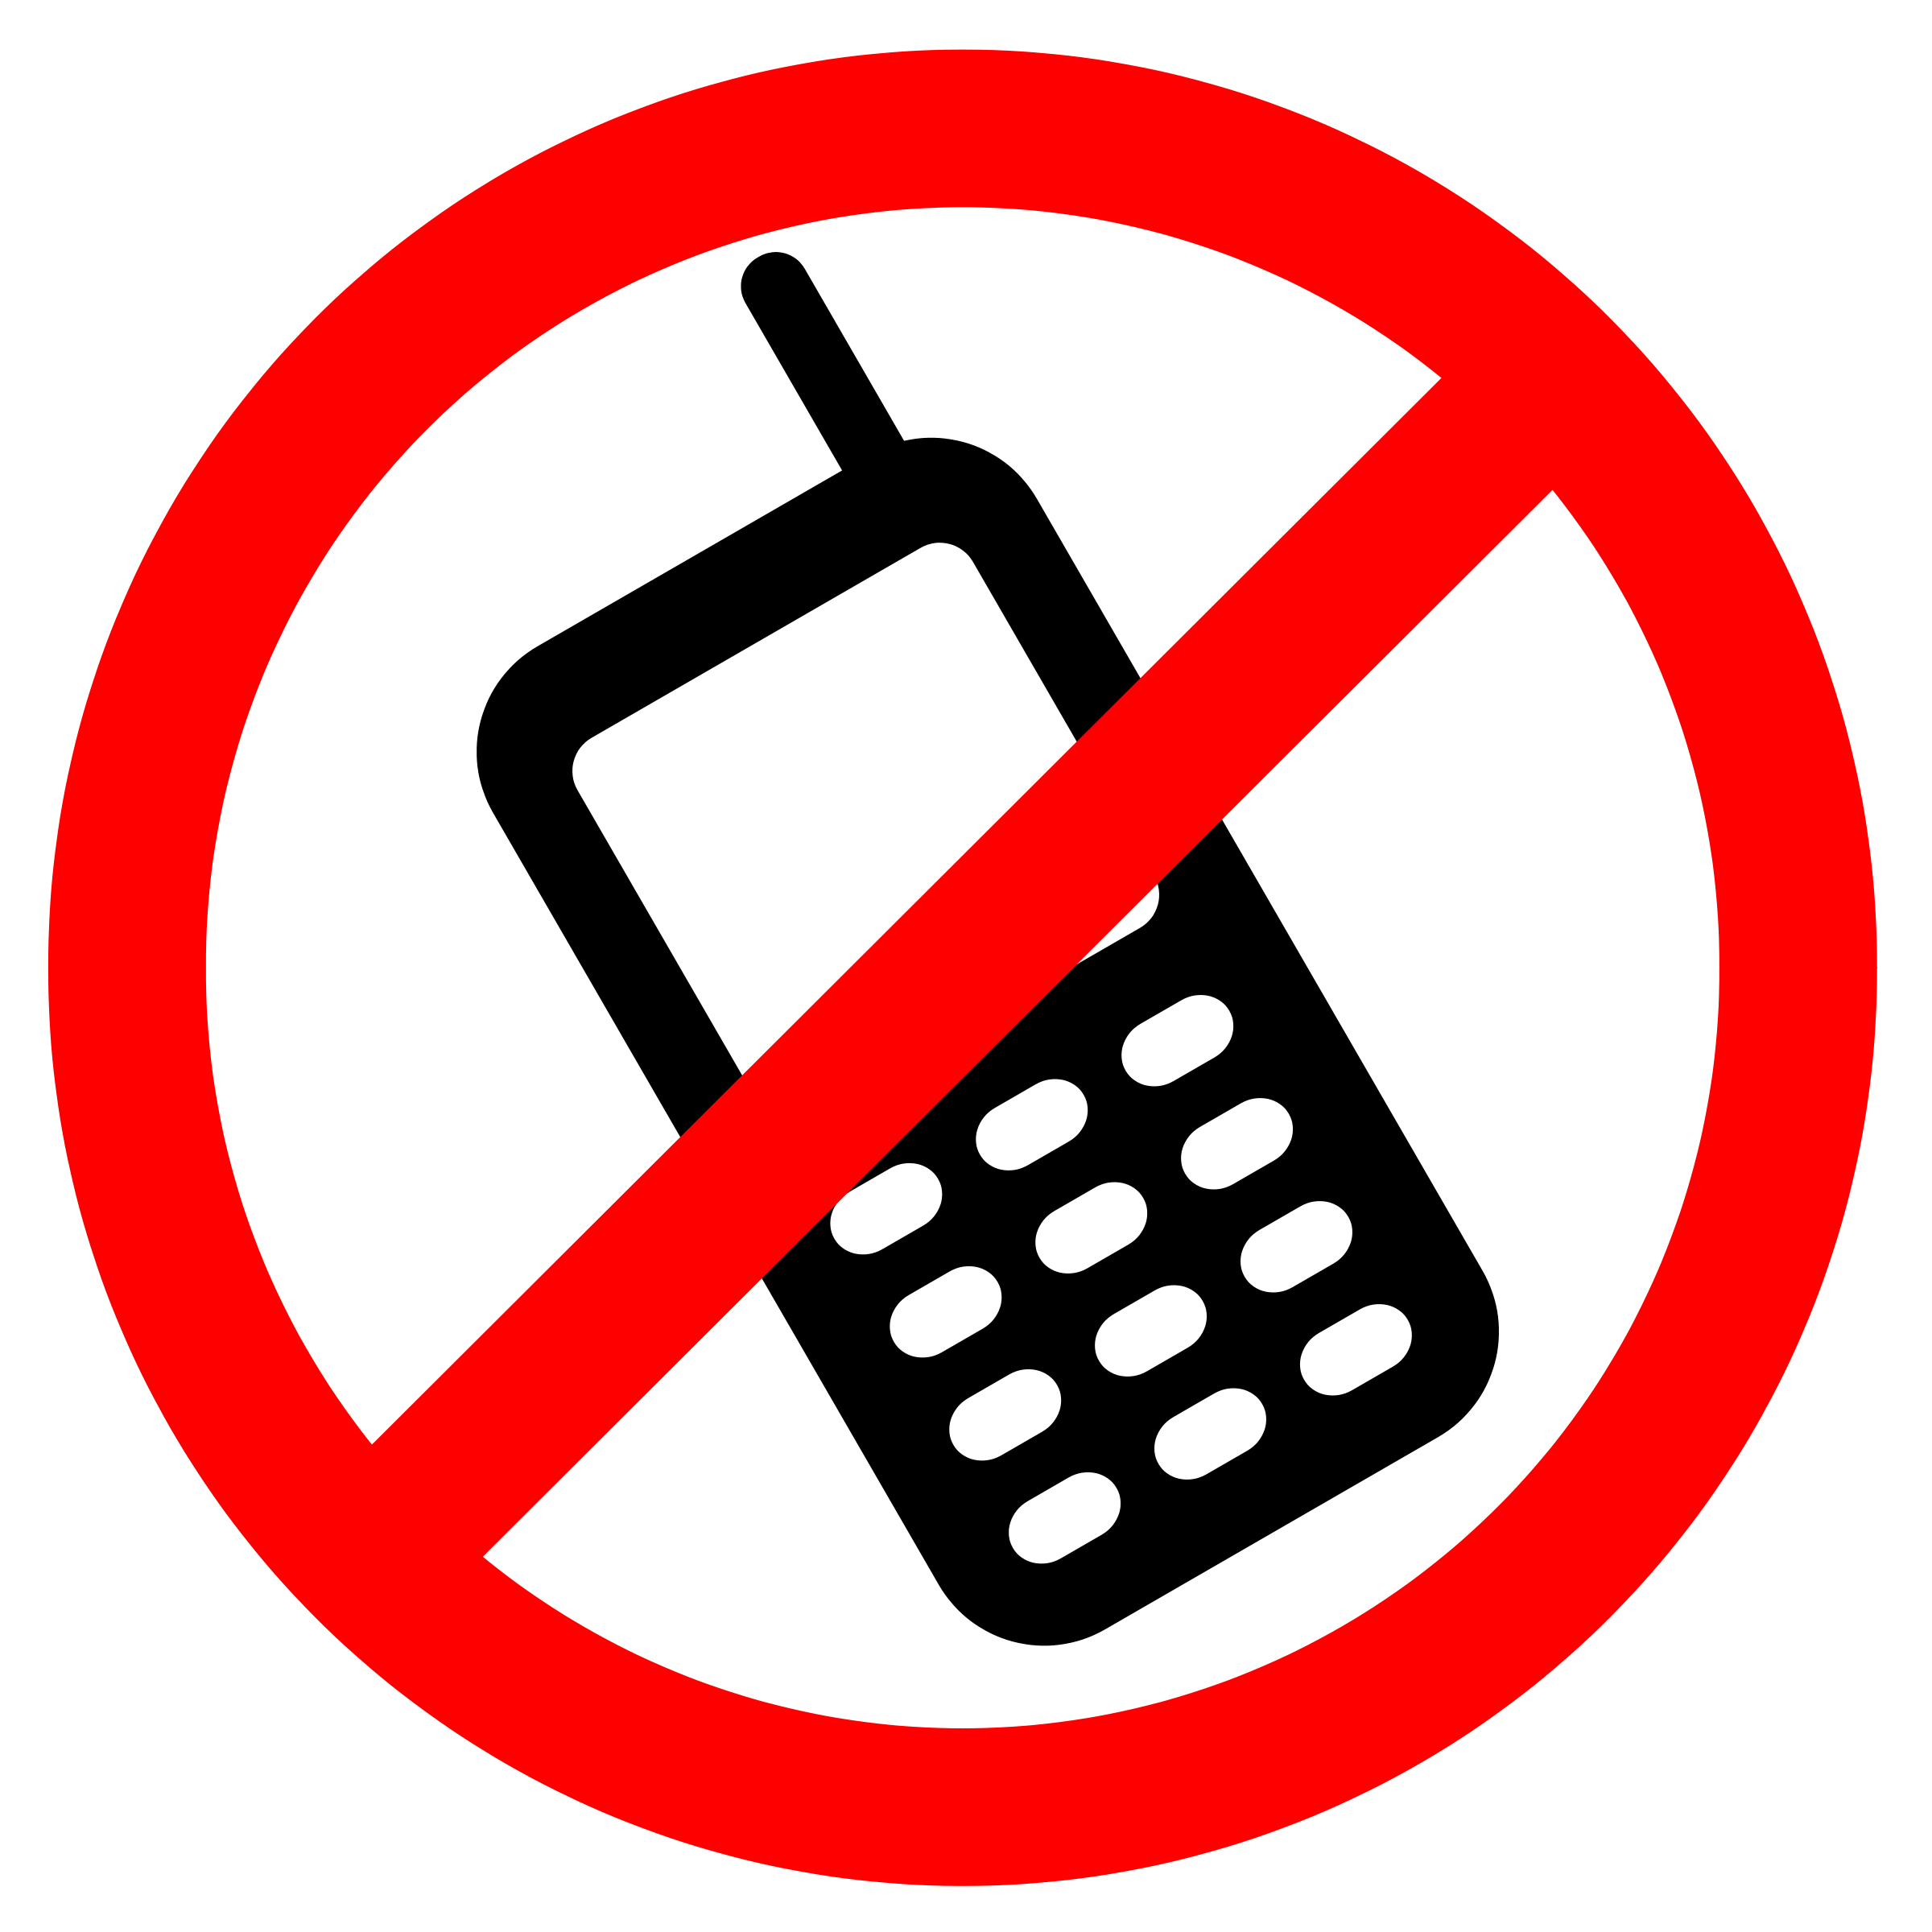 No Cell Phones Image Clipart Best